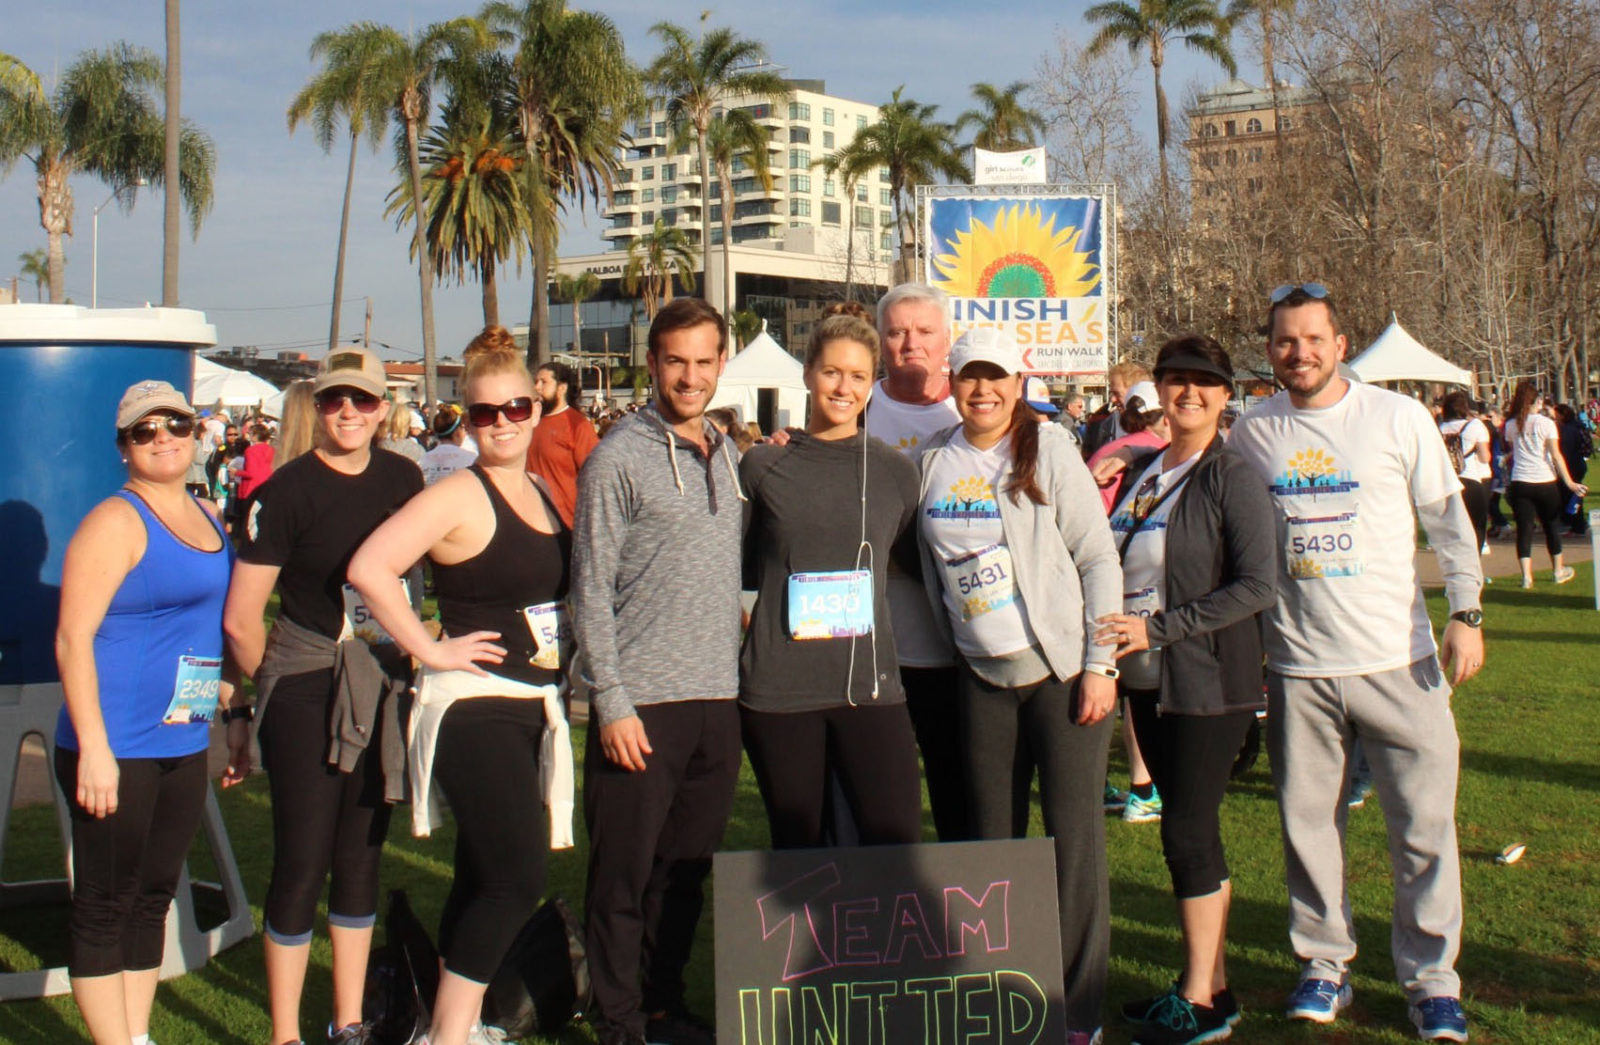 Some members of Team United that ran/ walked for Finish Chelsea's Run.